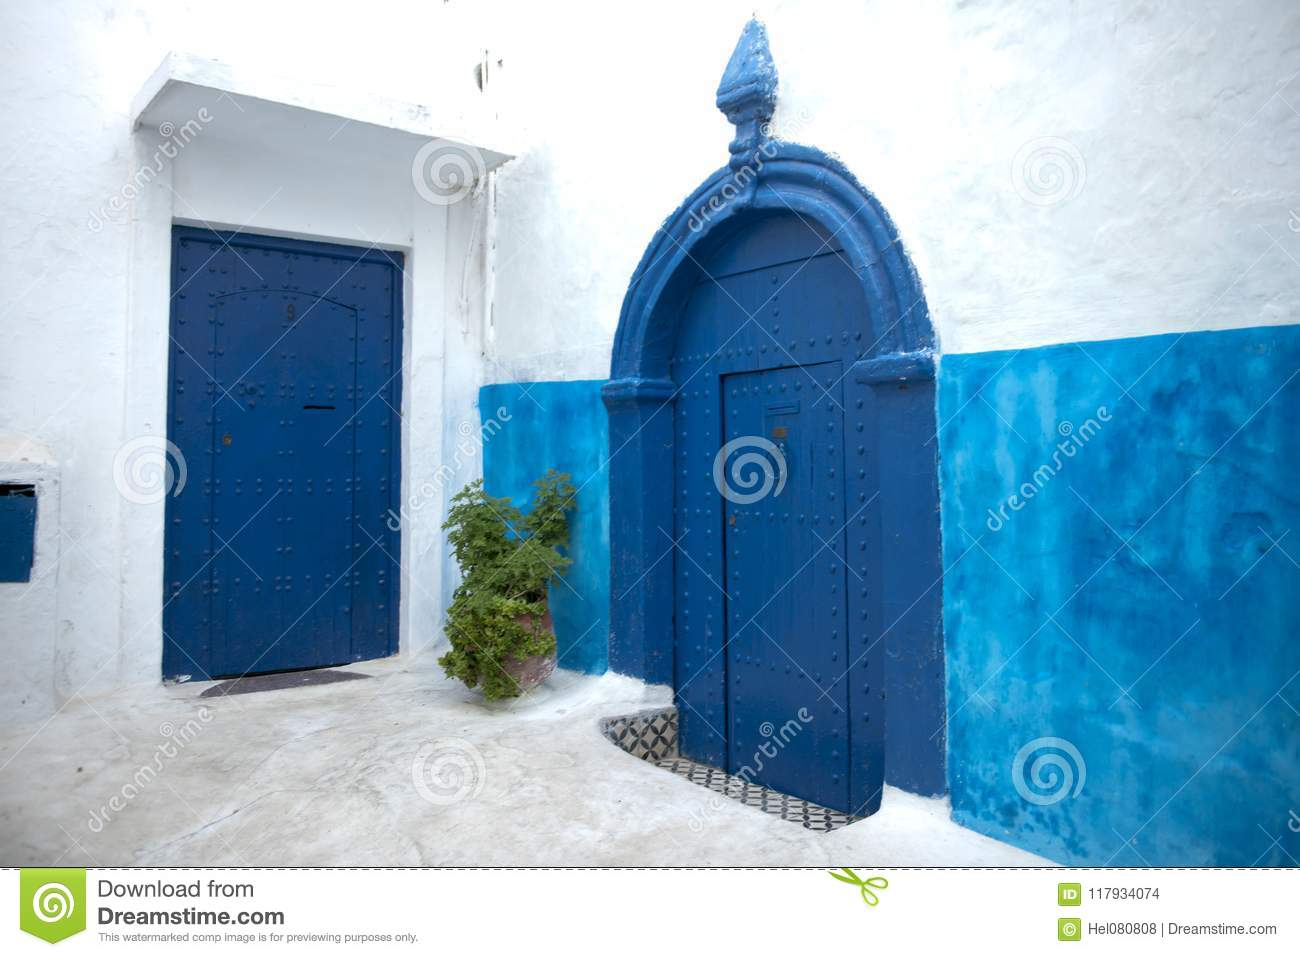 Blue painted doors and walls in Kasbah of the Udayas, Rabat, Morocco